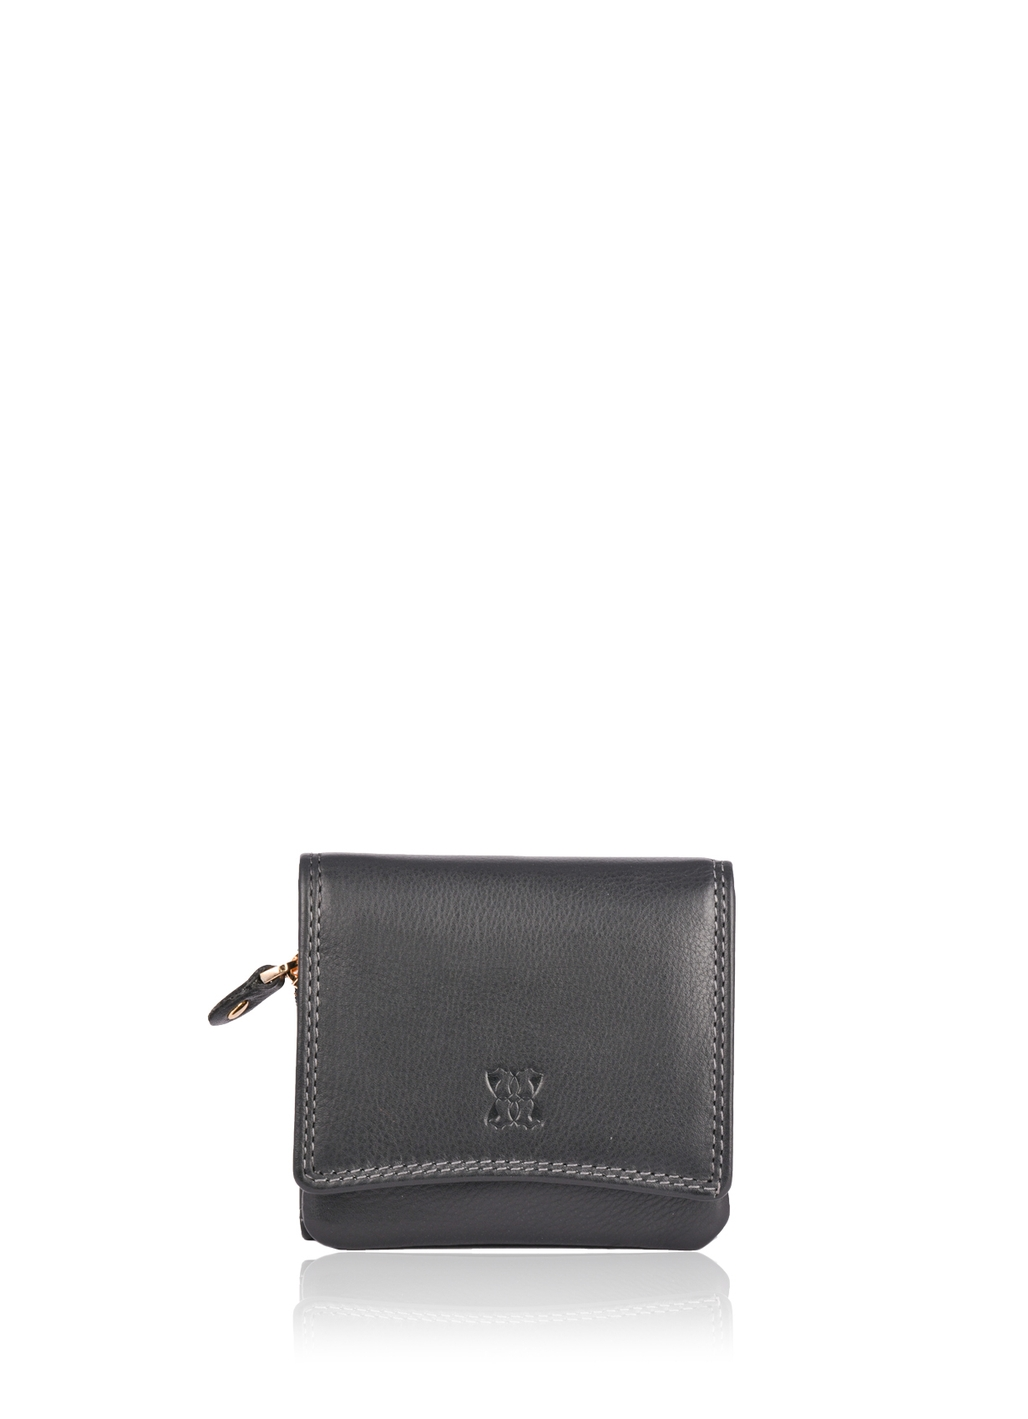 10cm Leather Purse in Black